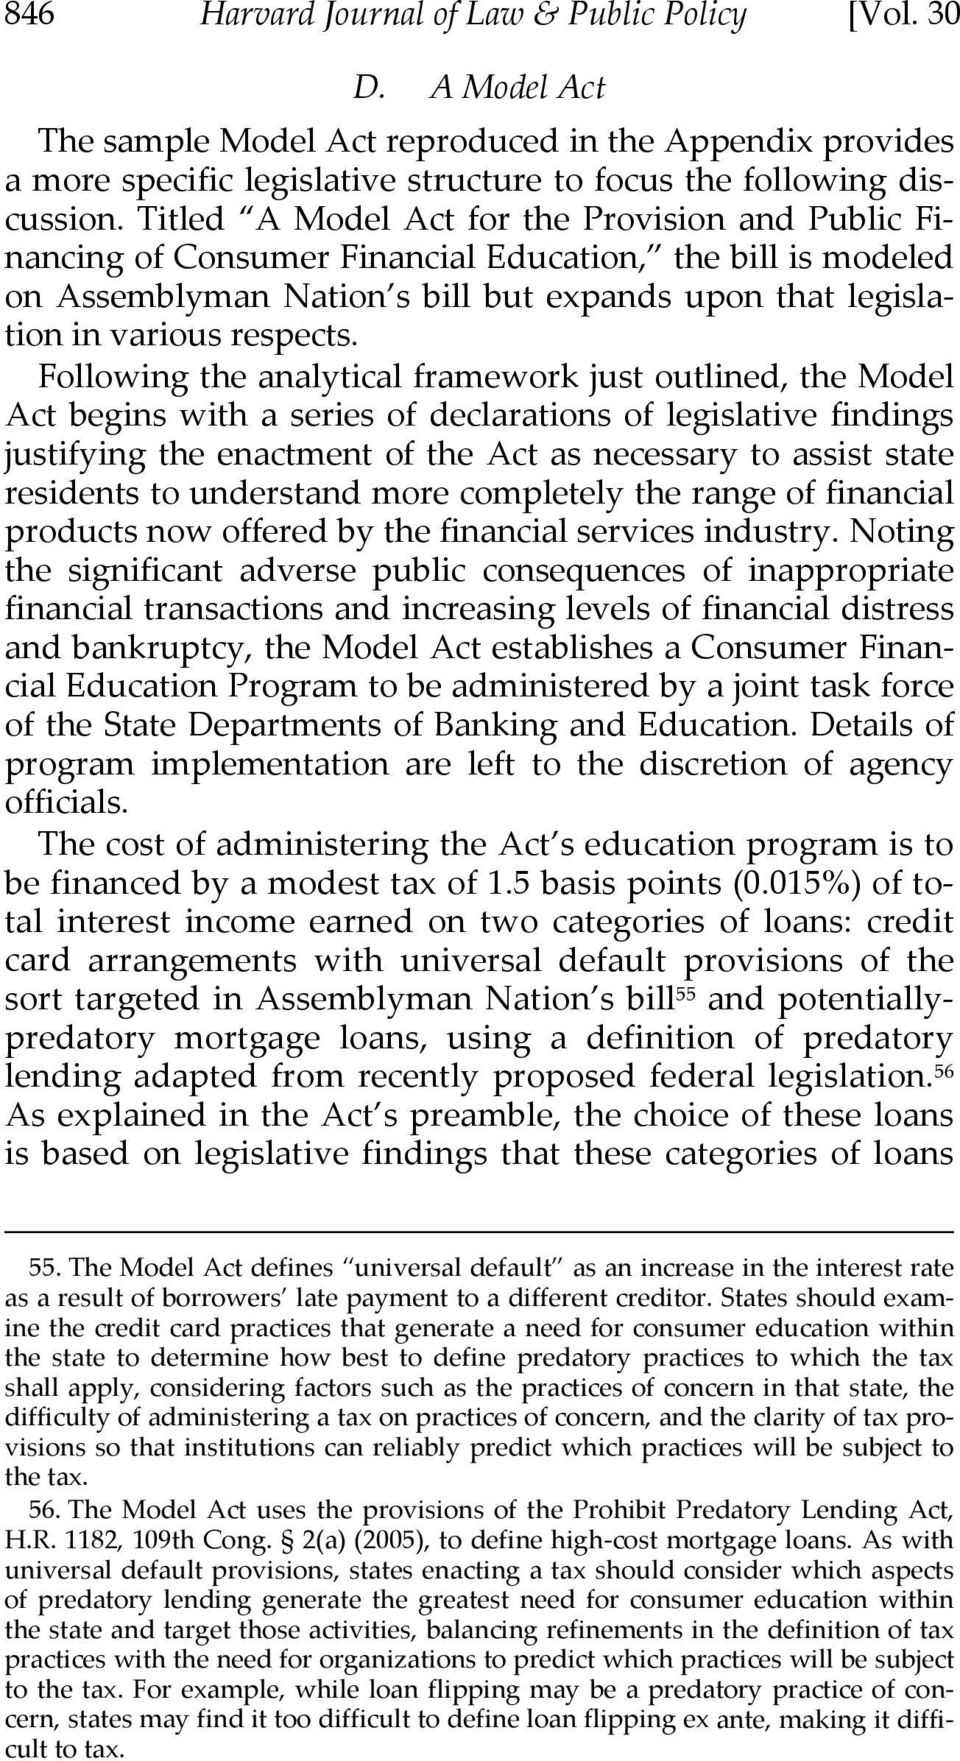 Following the analytical framework just outlined, the Model Act begins with a series of declarations of legislative findings justifying the enactment of the Act as necessary to assist state residents